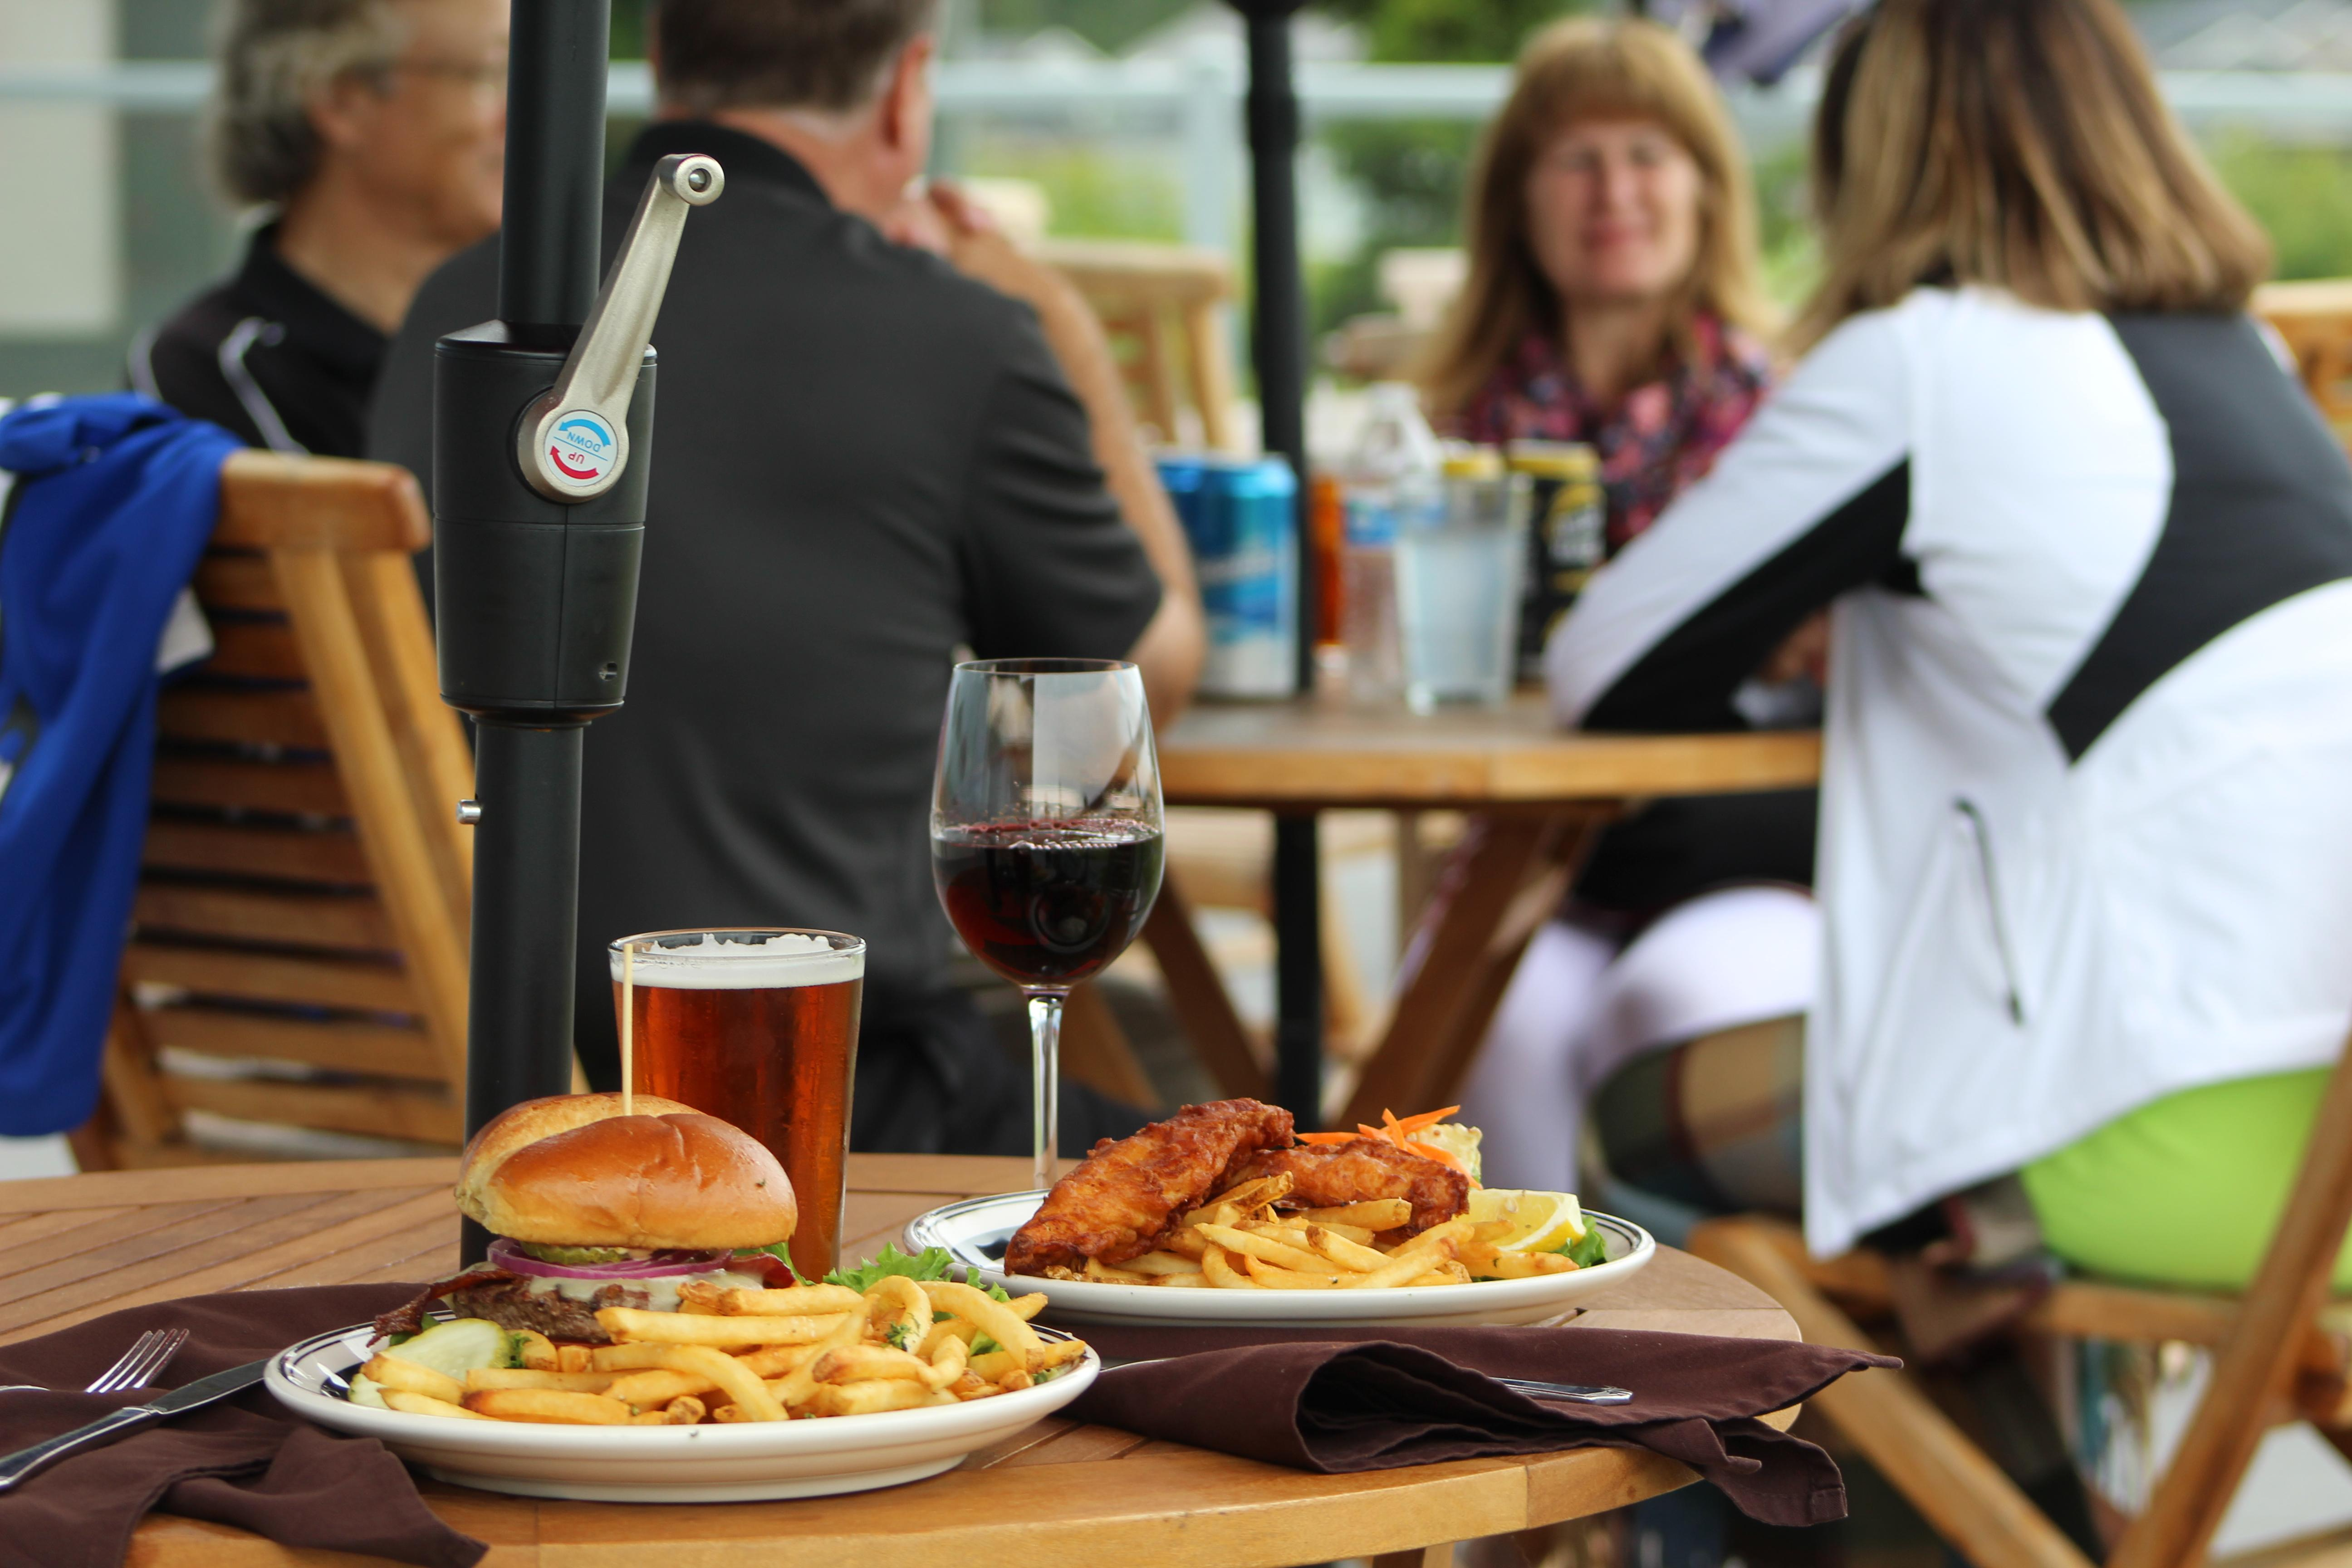 Semiahmoo features a range of dining options at three different restaurants onsite.